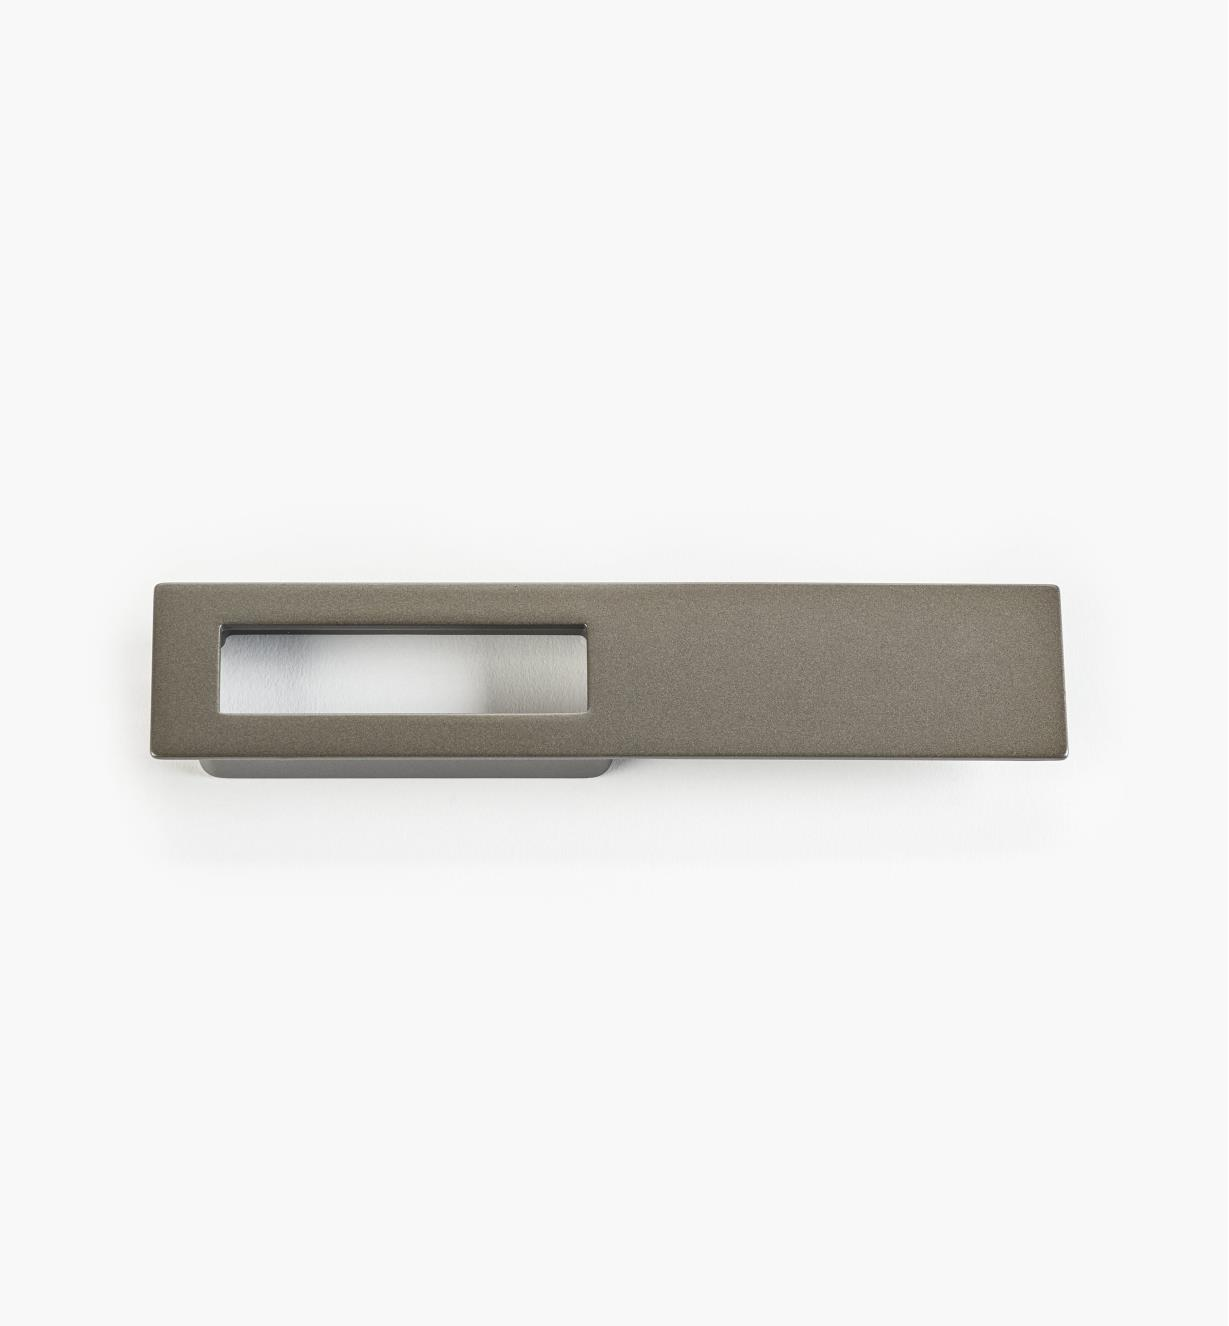 02W1676 - Nickel Titanium Mortise Pull